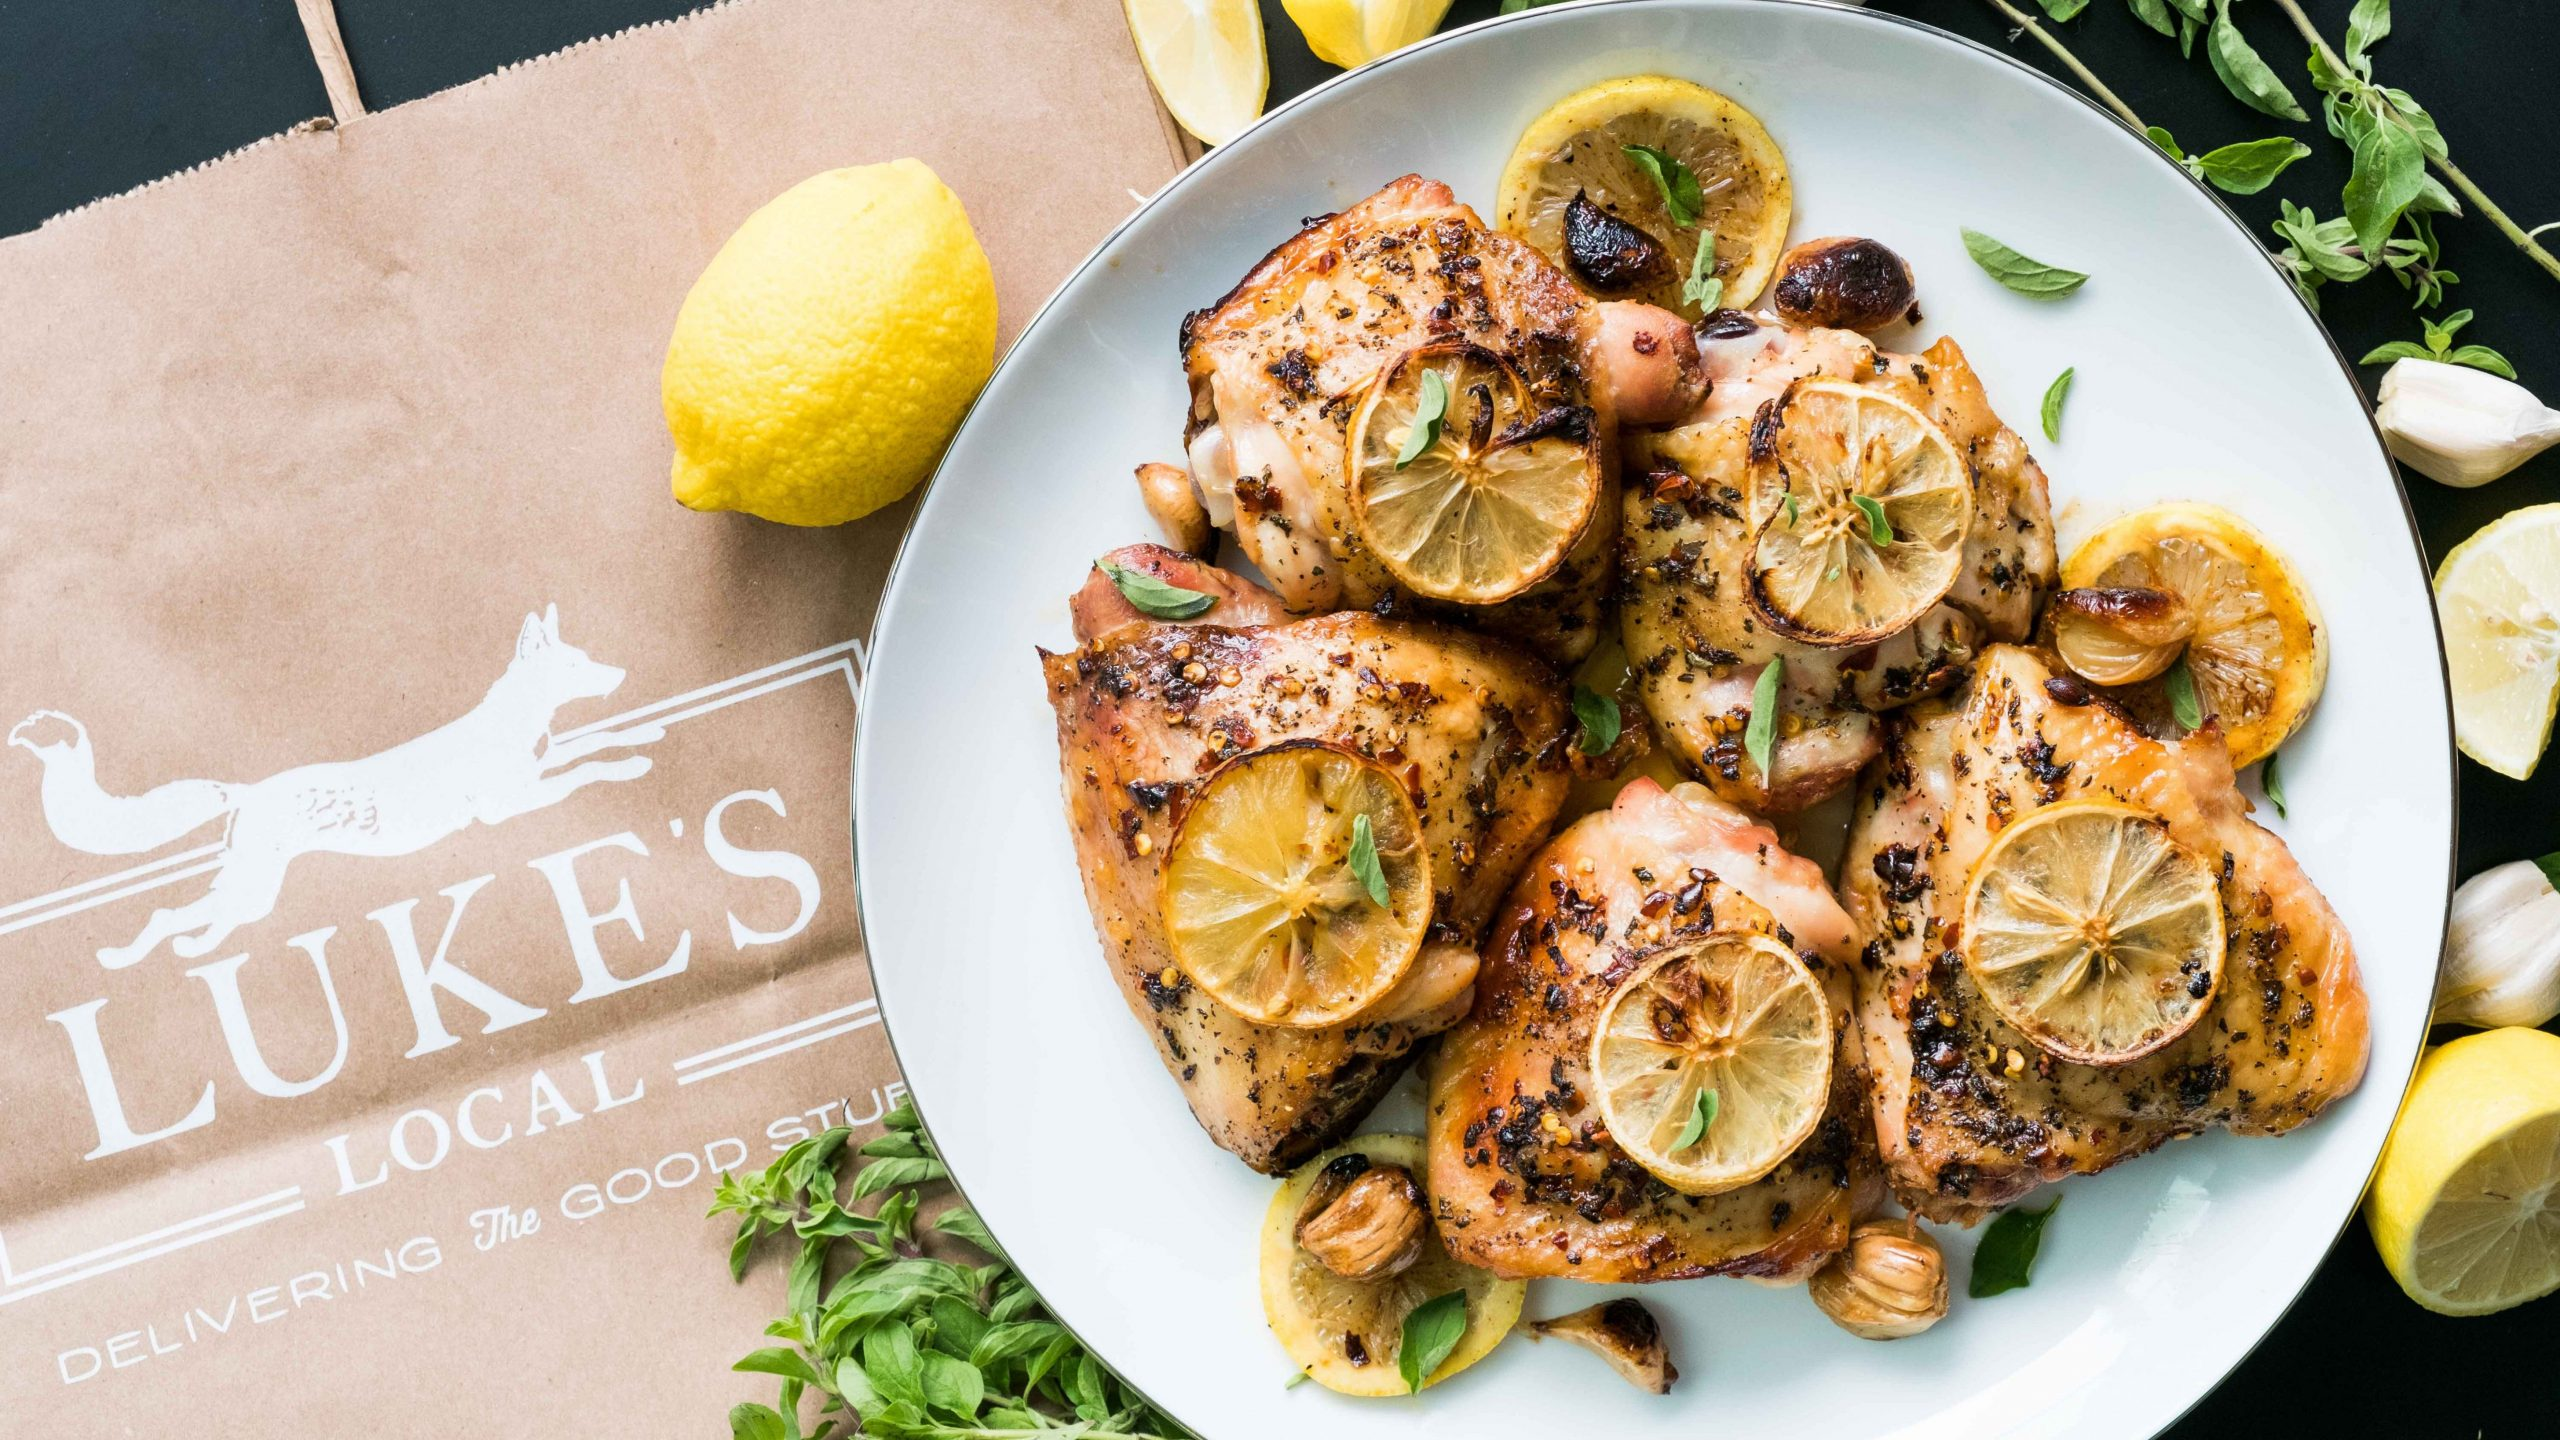 George Foreman Grill Lemon Garlic Chicken - Easy Recipes George Foreman Grill